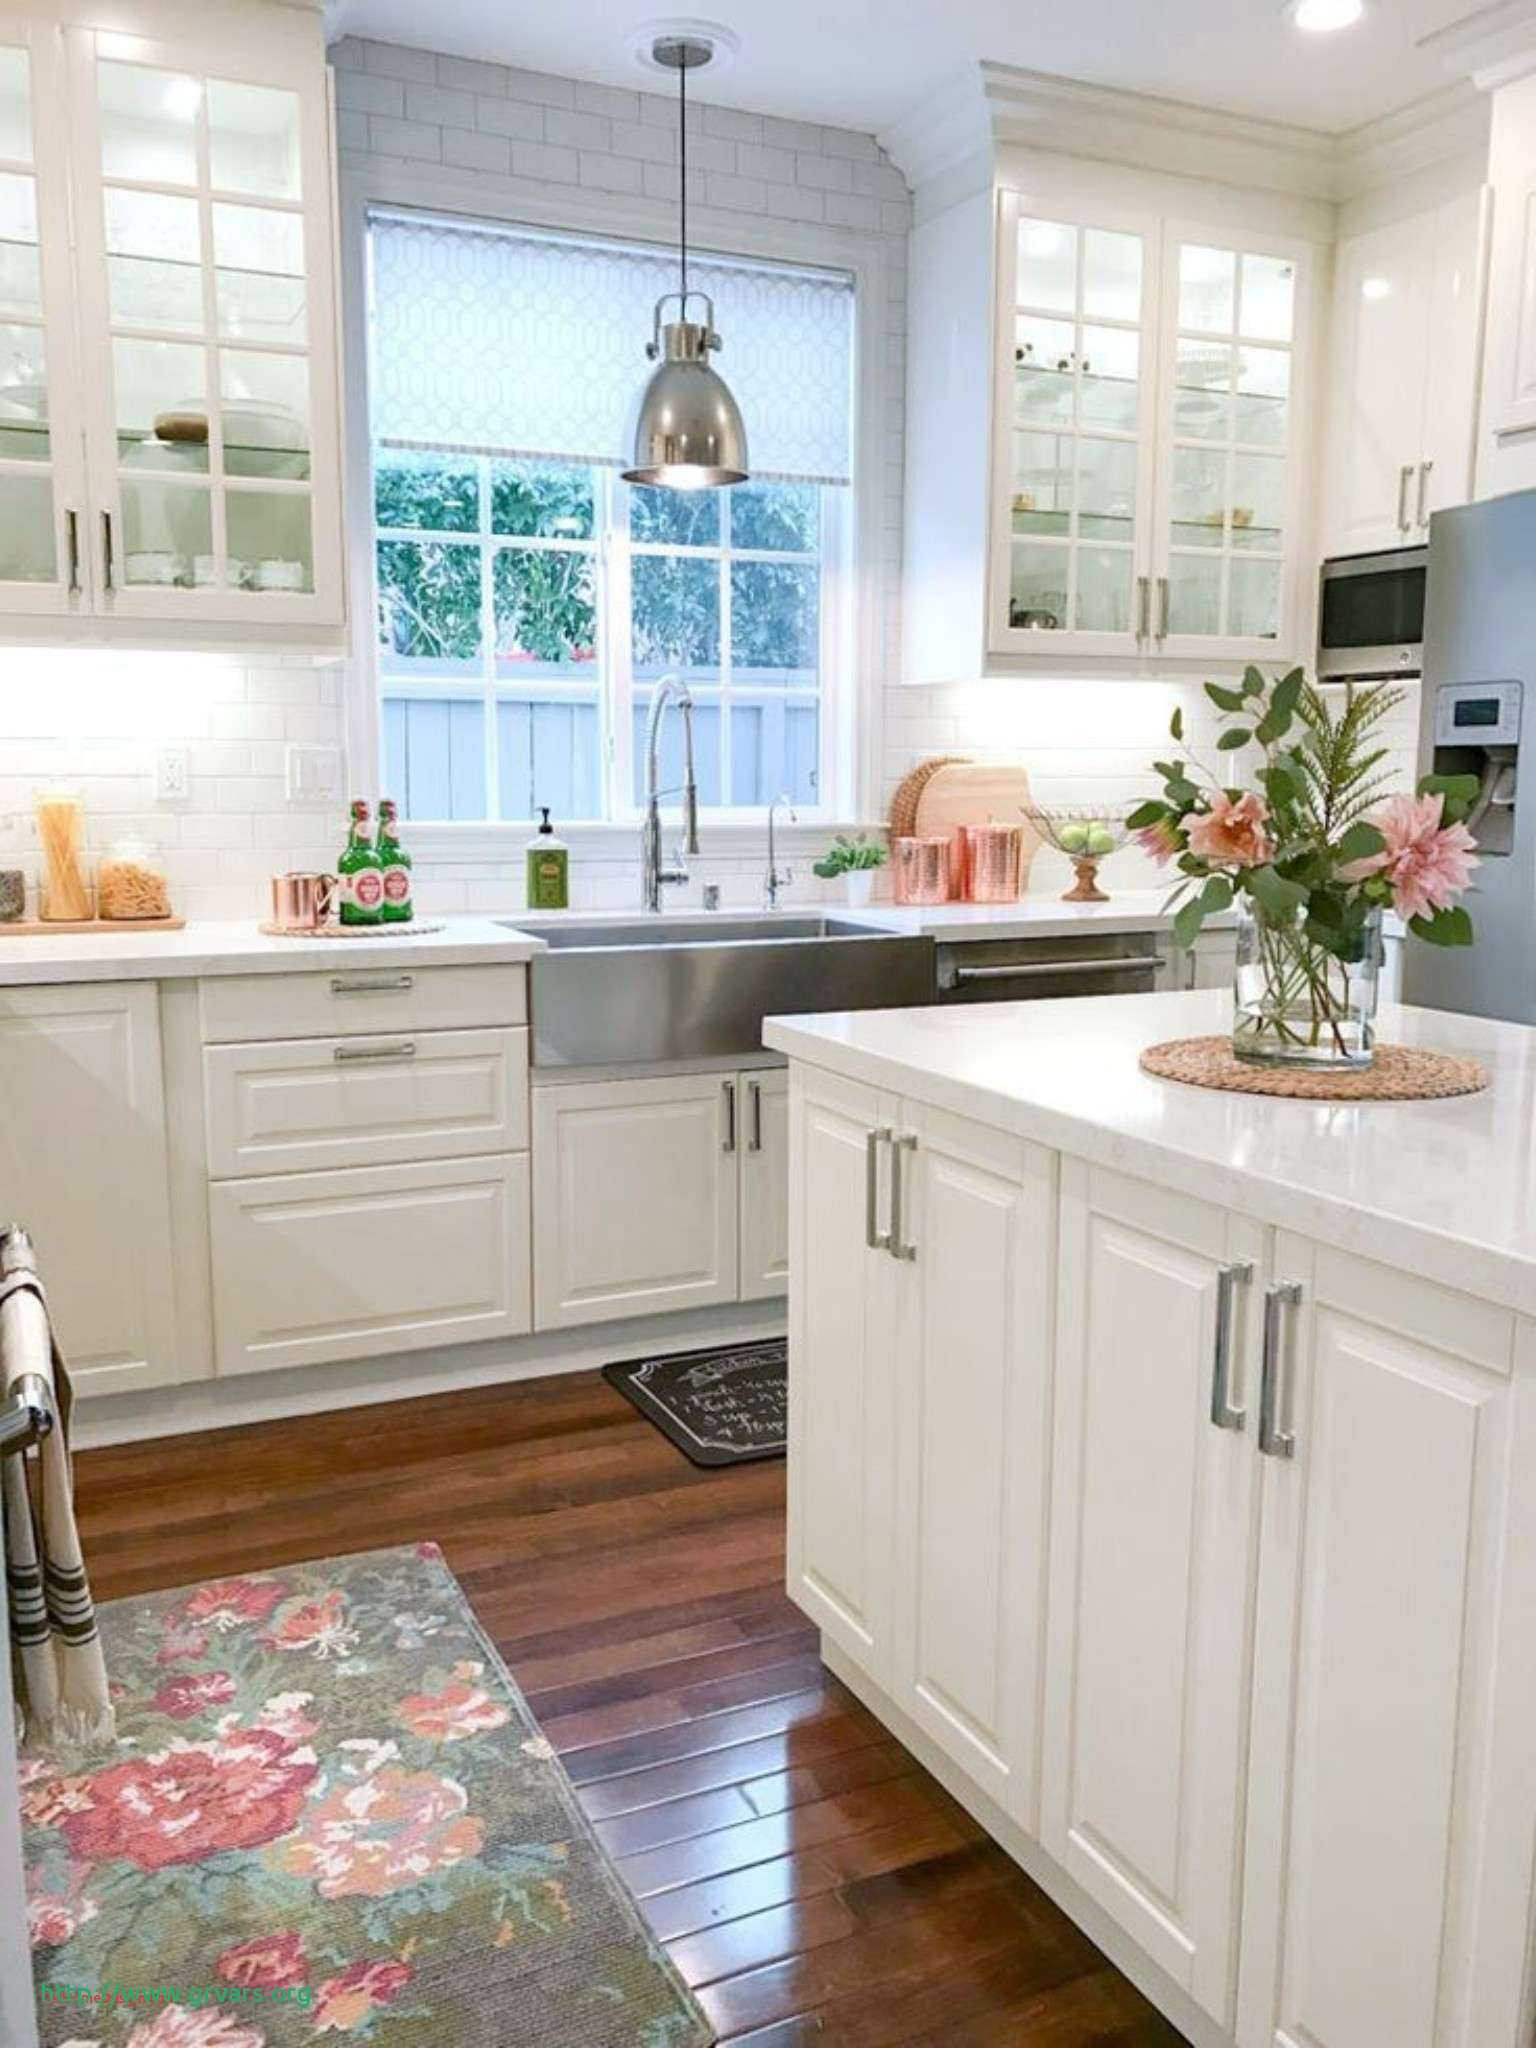 can you use different color hardwood floors of 17 meilleur de what color cabinets go with light wood floors ideas for kitchen cabinets luxury kitchen cabinets fresh kitchen cabinet 0d bright lights design